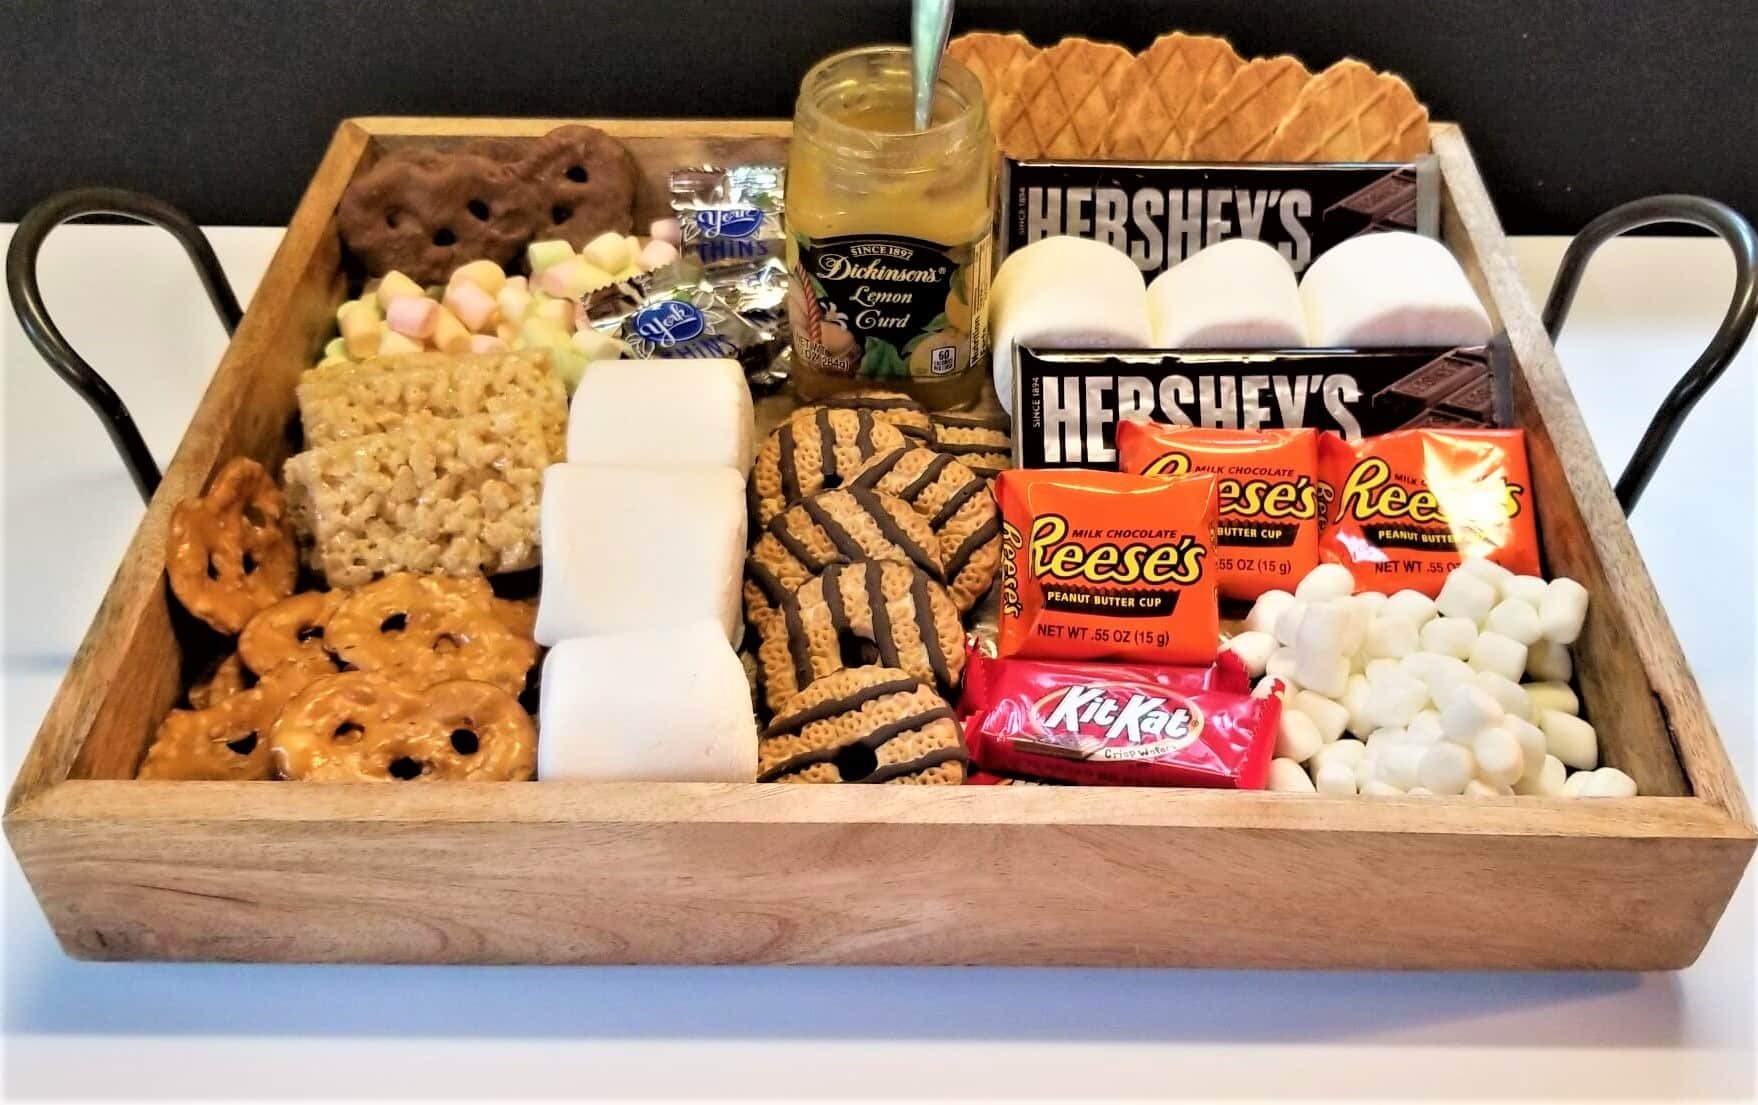 a s'mores dessert tray, filled with marshmallows, chocolate candies, cookies and crackrers